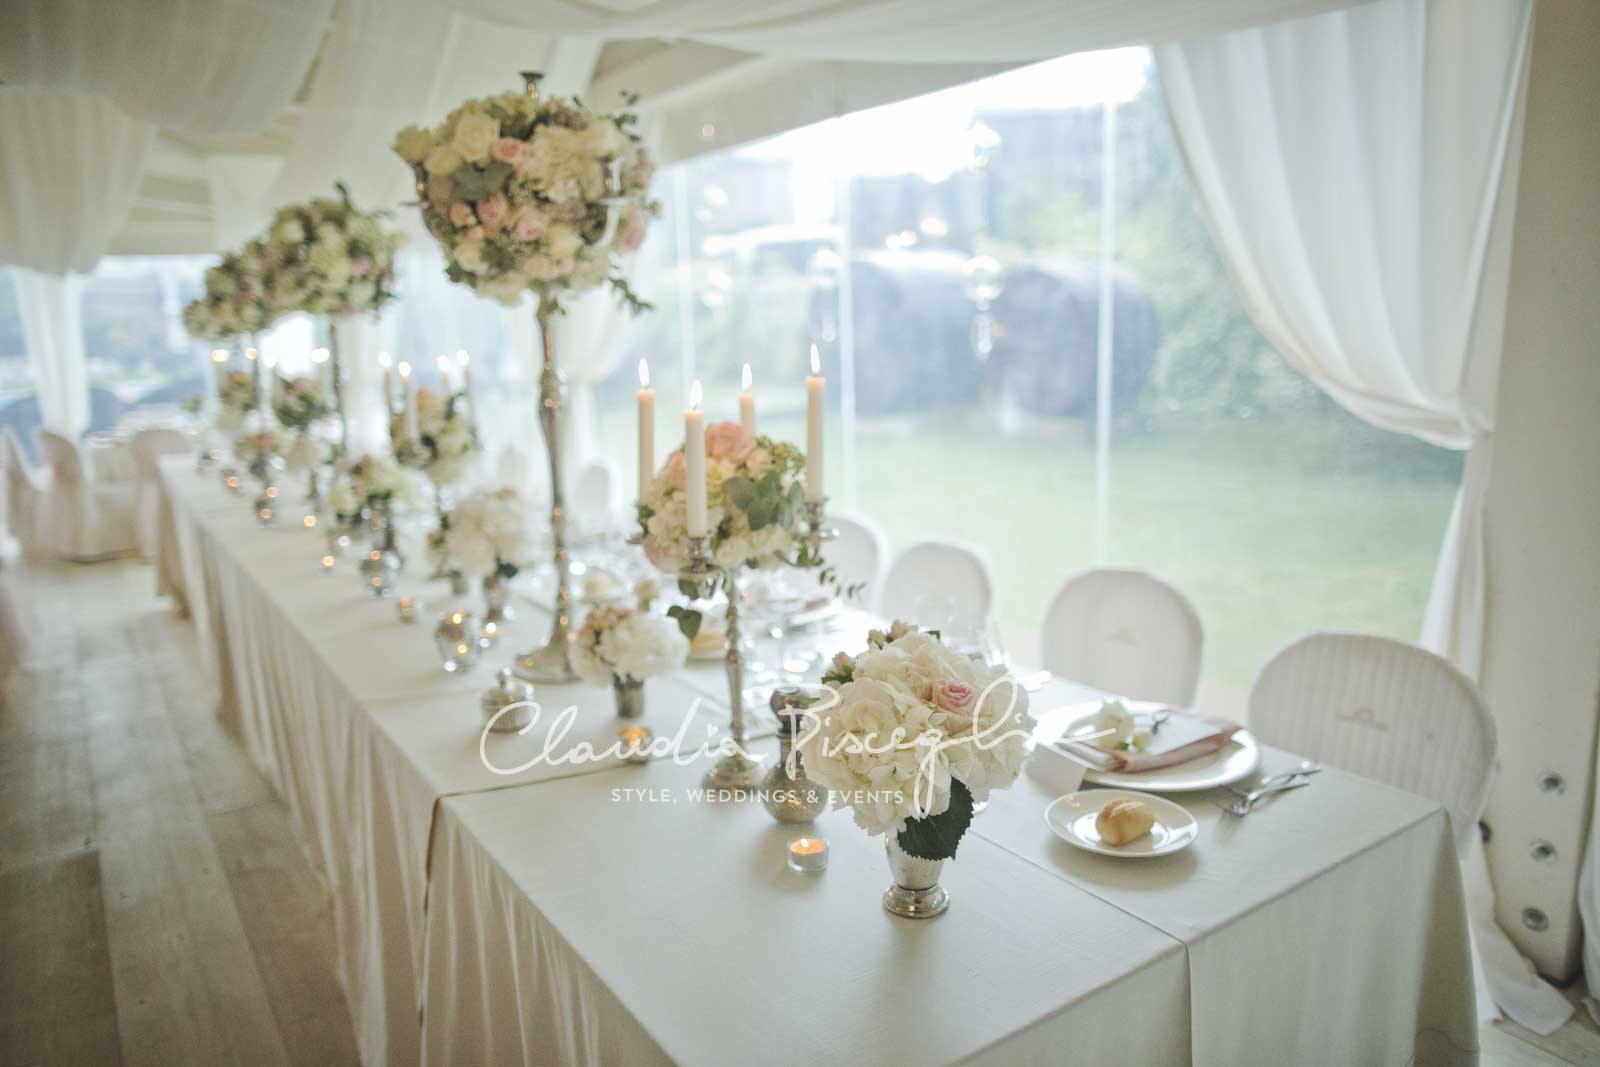 25-Bridaltable-whitedetails-flowers-luxurywedding